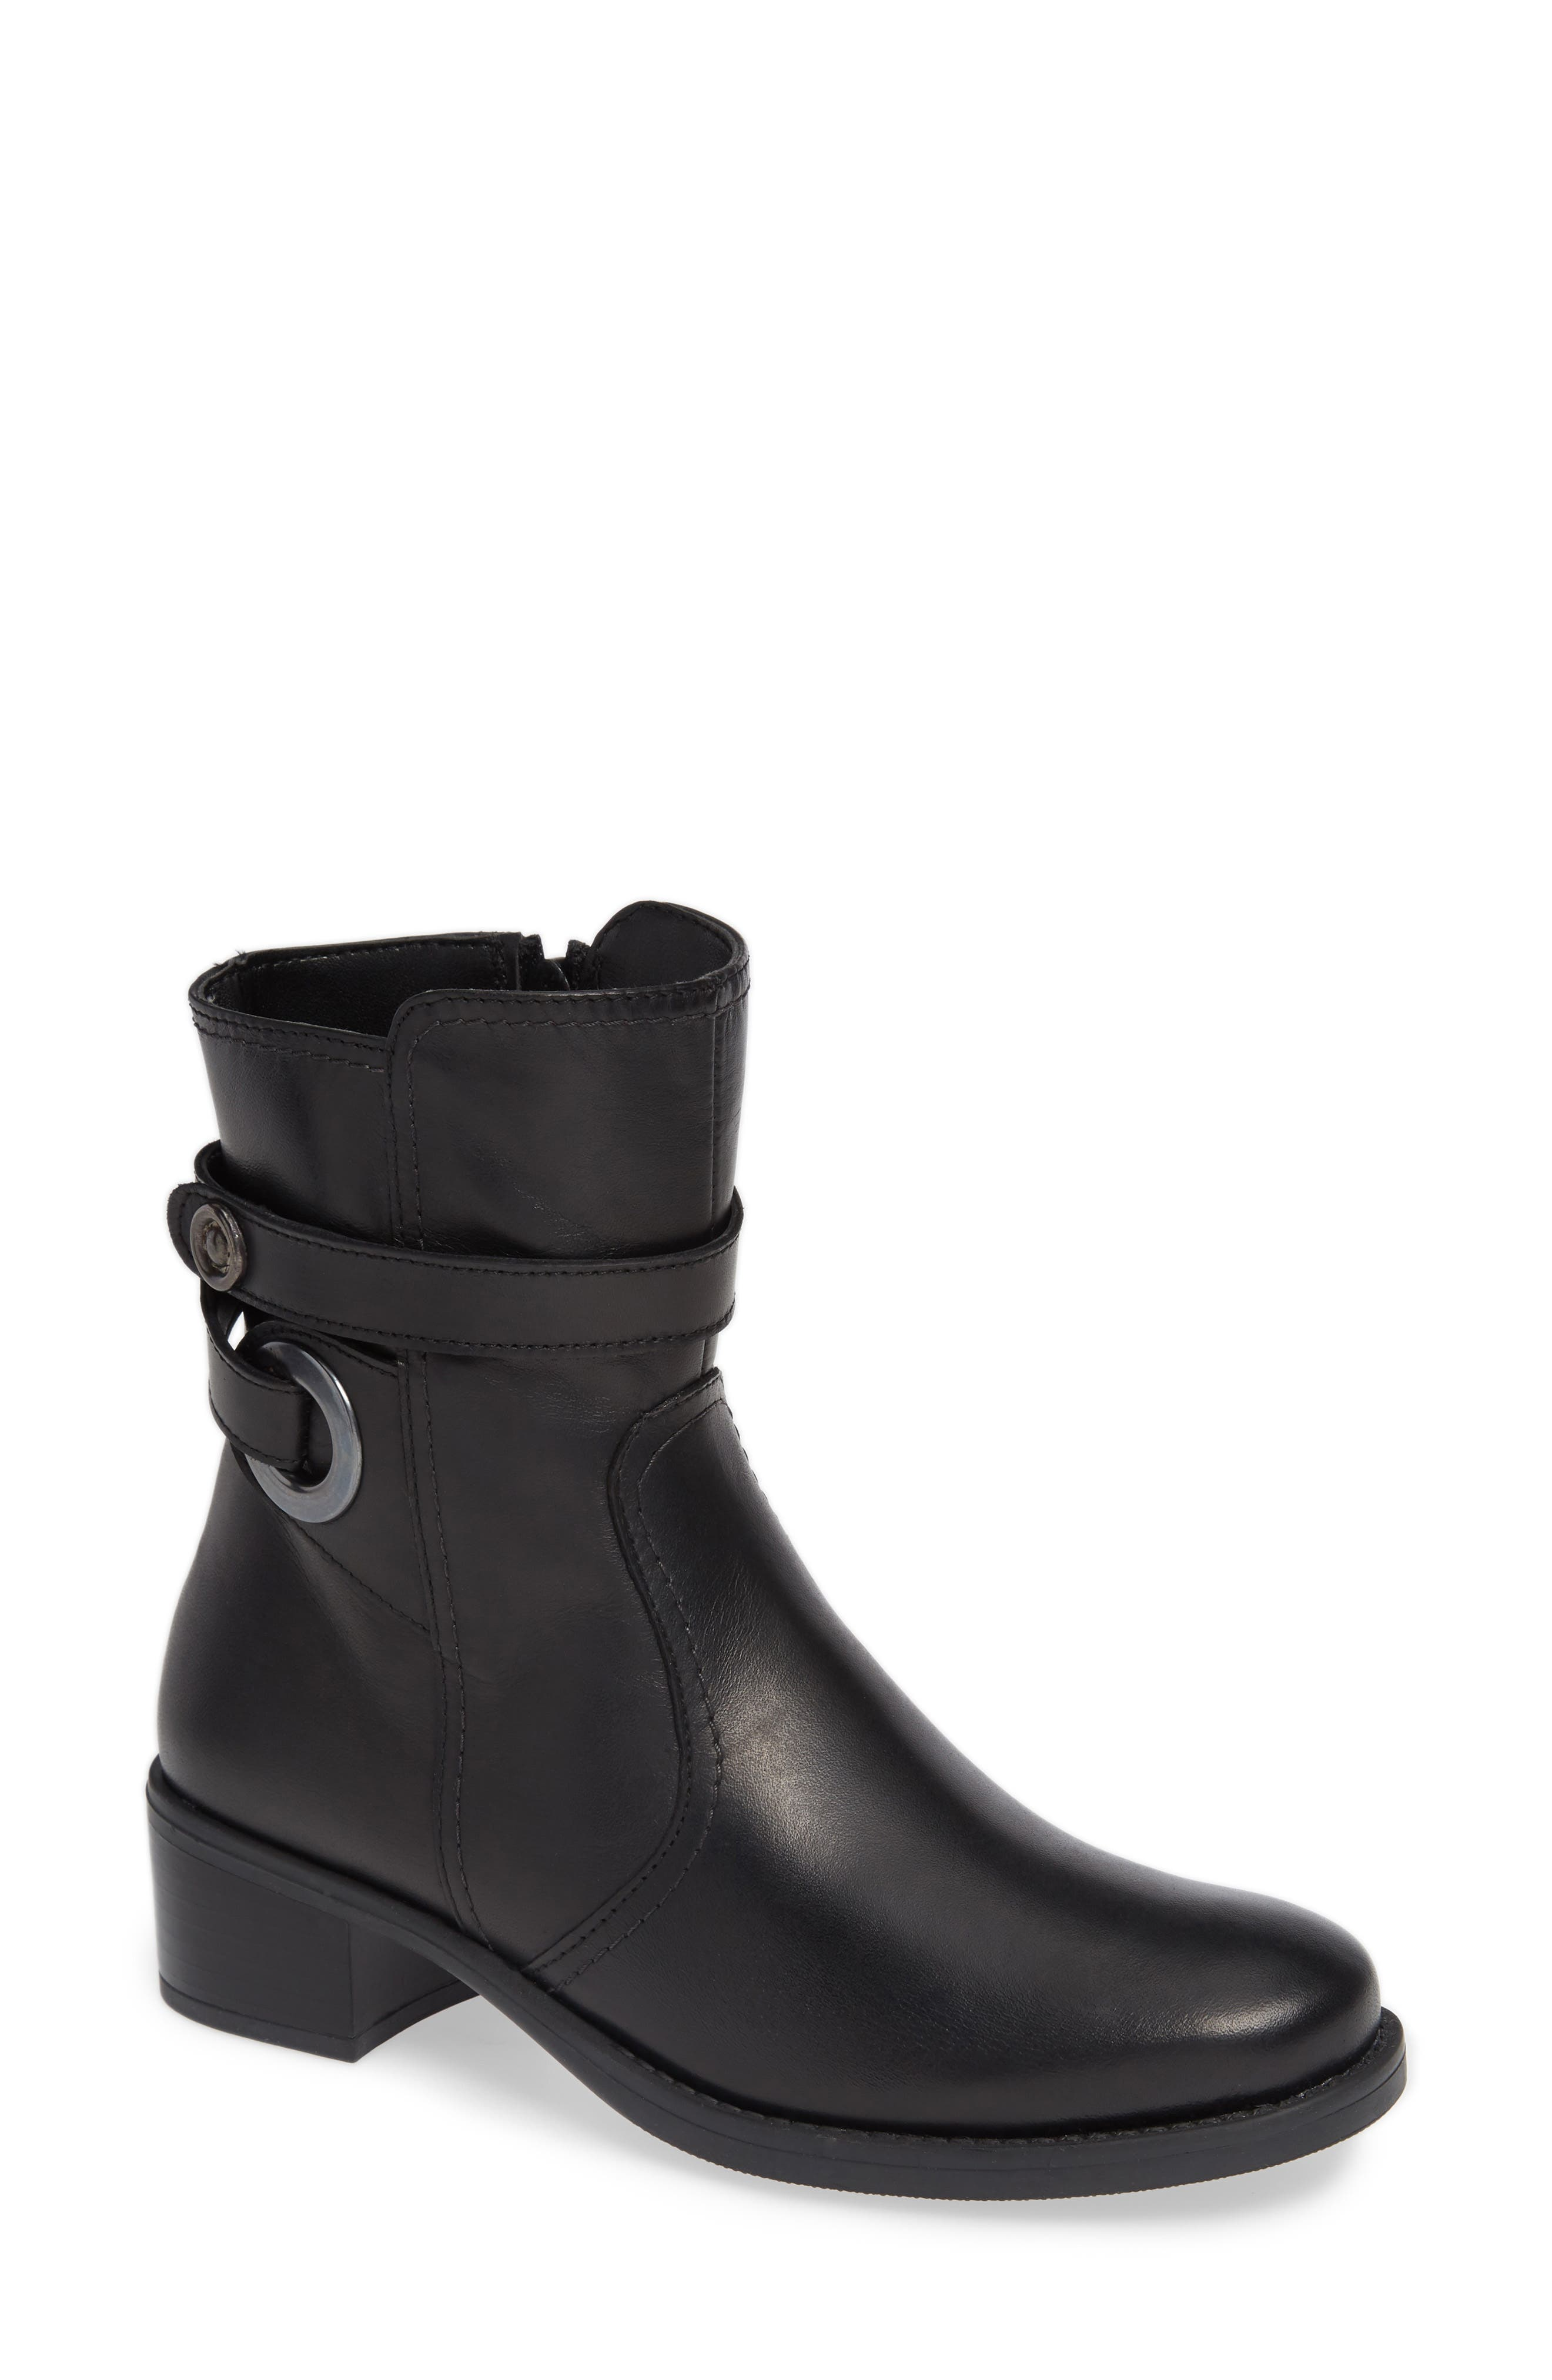 David Tate Java Bootie W - Black